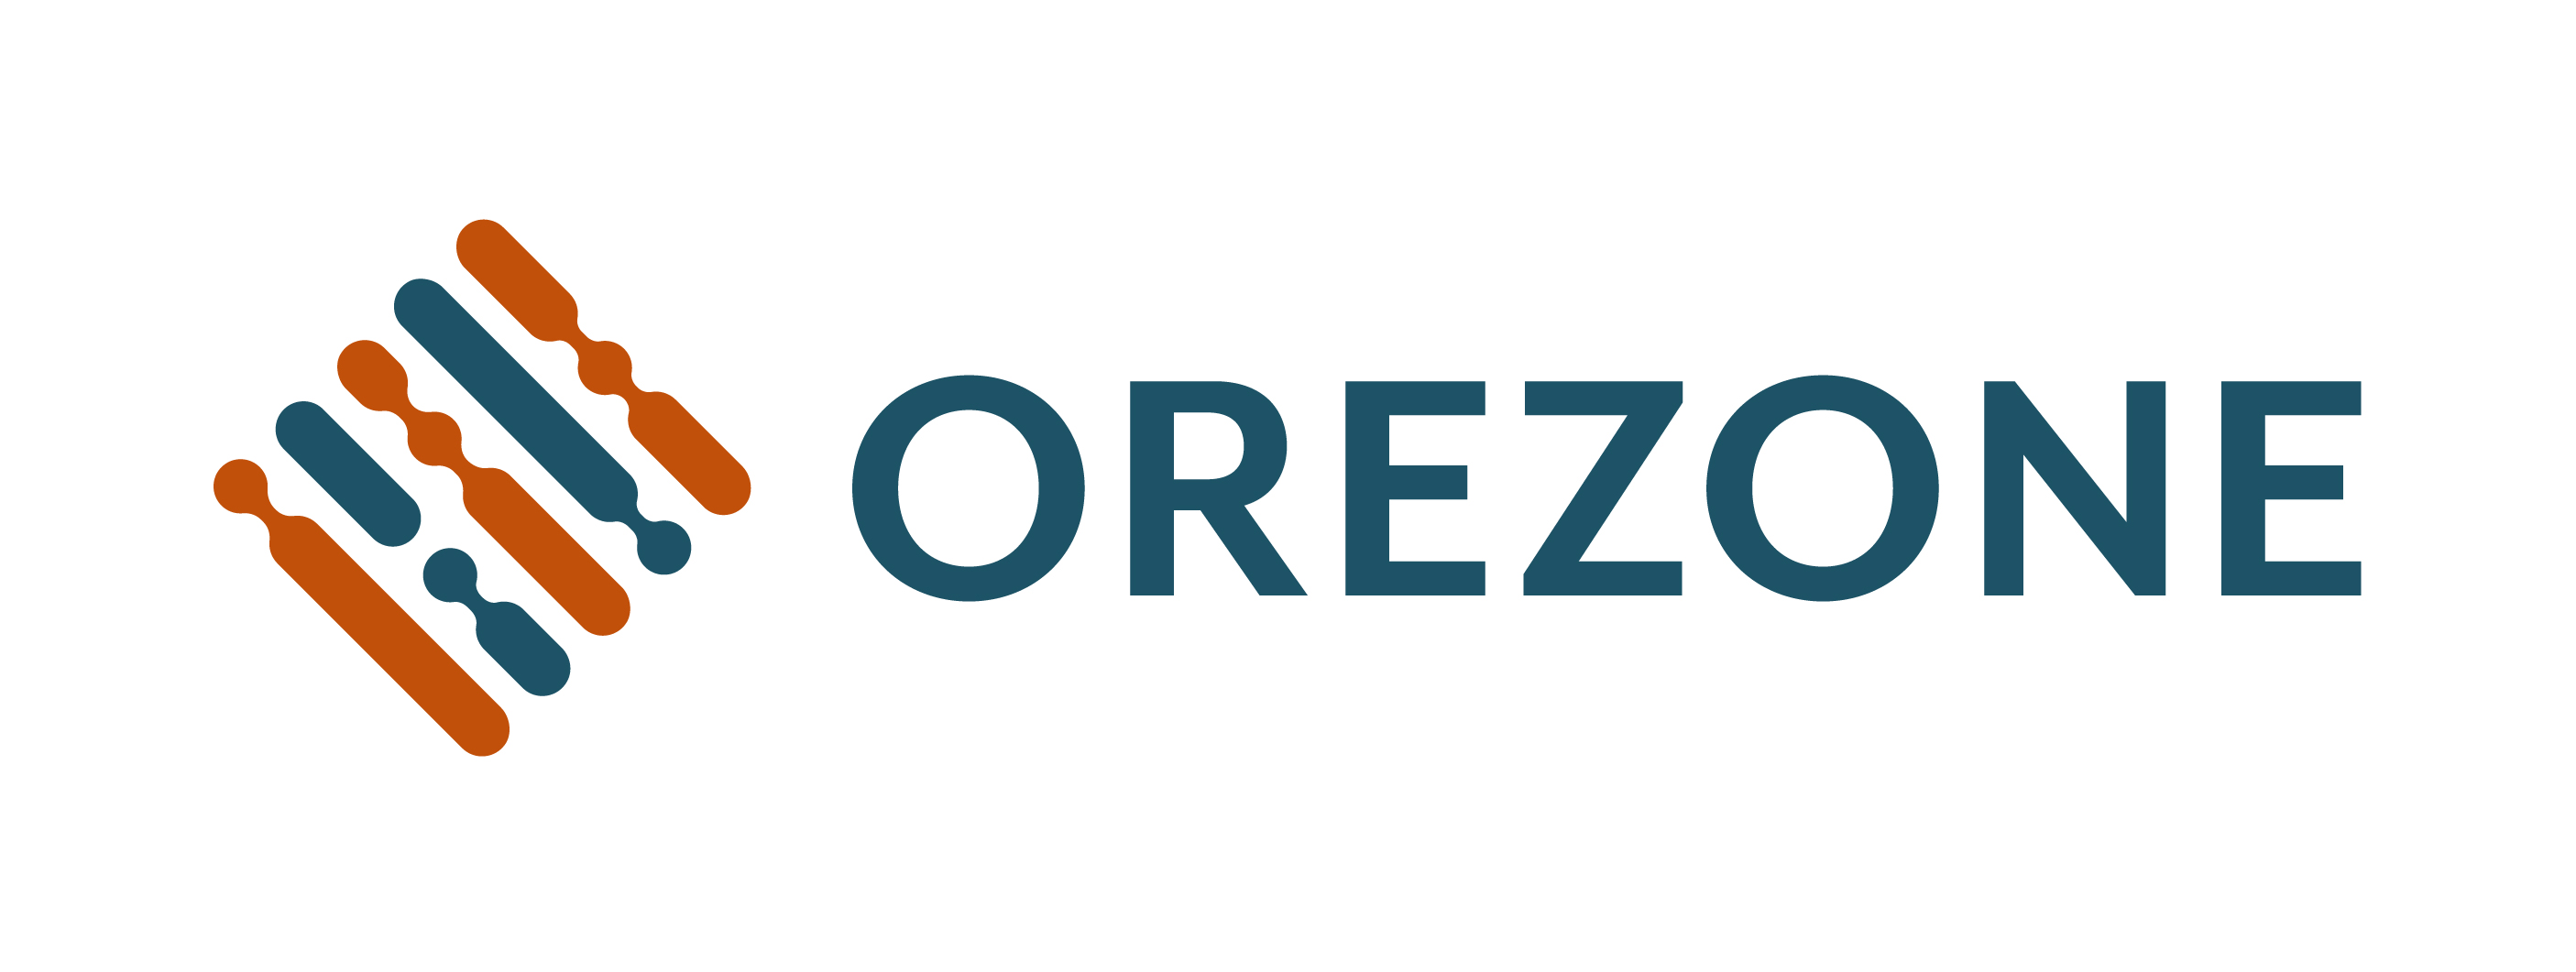 Orezone Receives Approval of Expanded Mining Permit for Bomboré